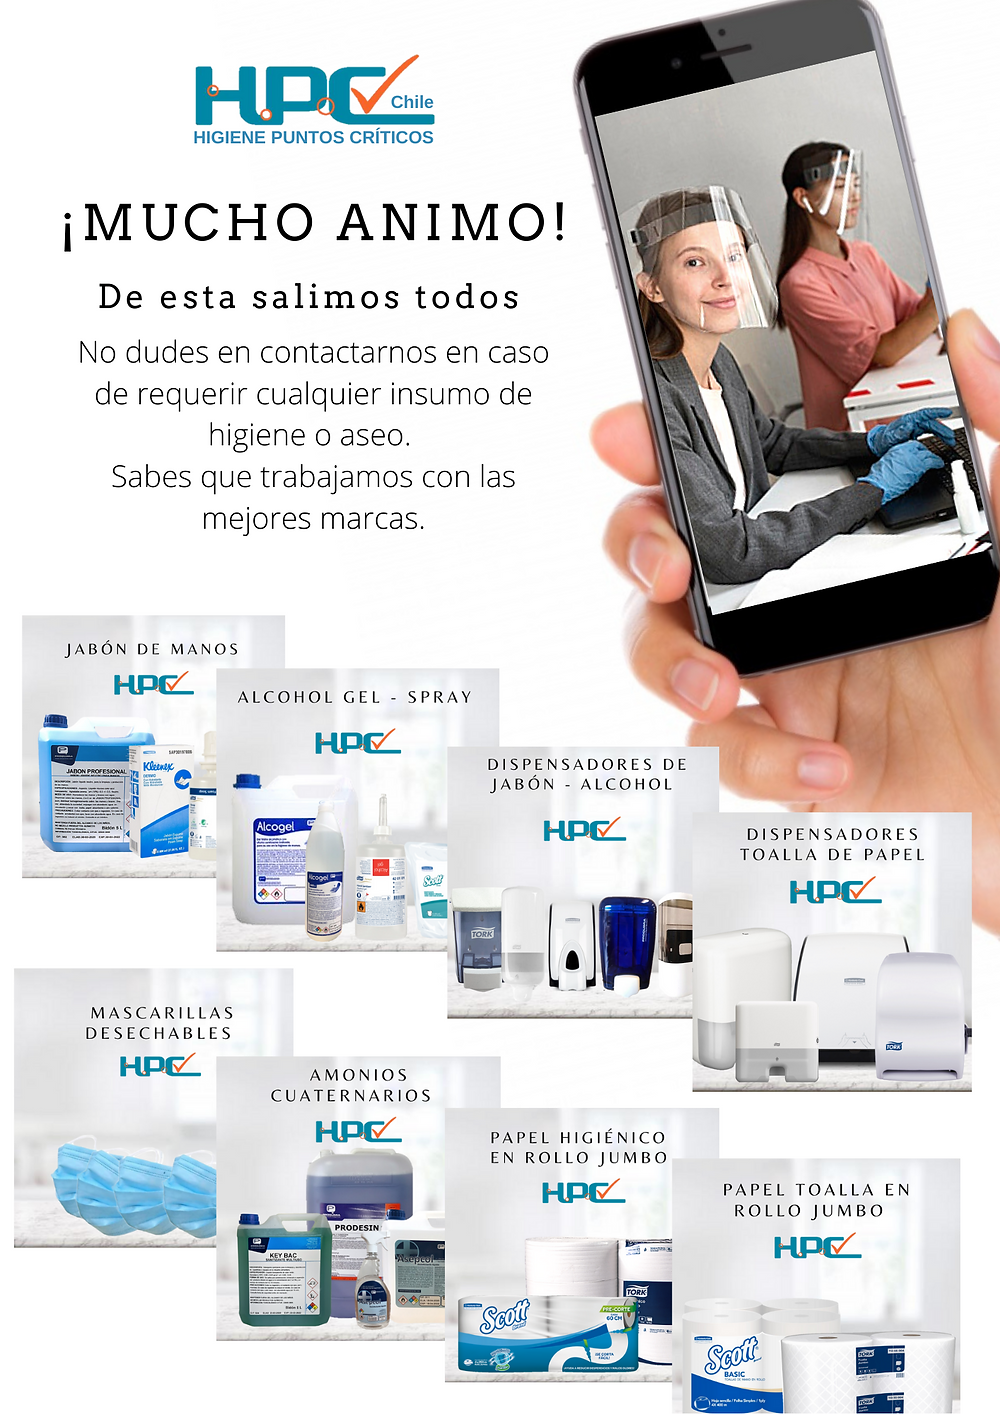 HPC CHILE, Alcohol gel, TORK, KIMERBLY CLARK, papel higiénico, dispensadores de toalla